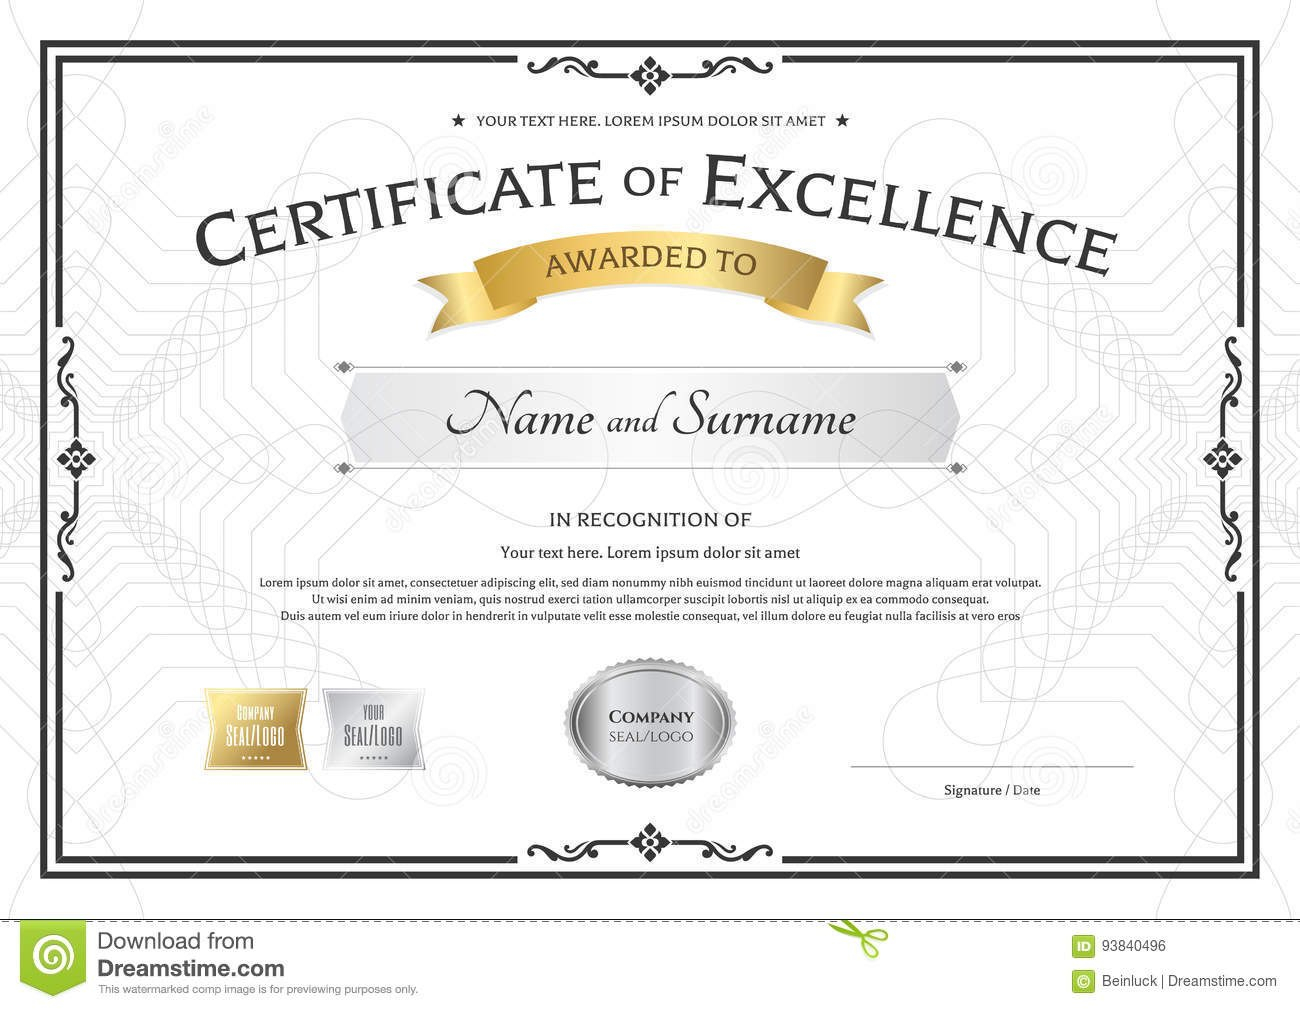 Certificate Of Excellence Template With Gold Award Ribbon On Abs Intended For Award Of Excellence Certificate Template